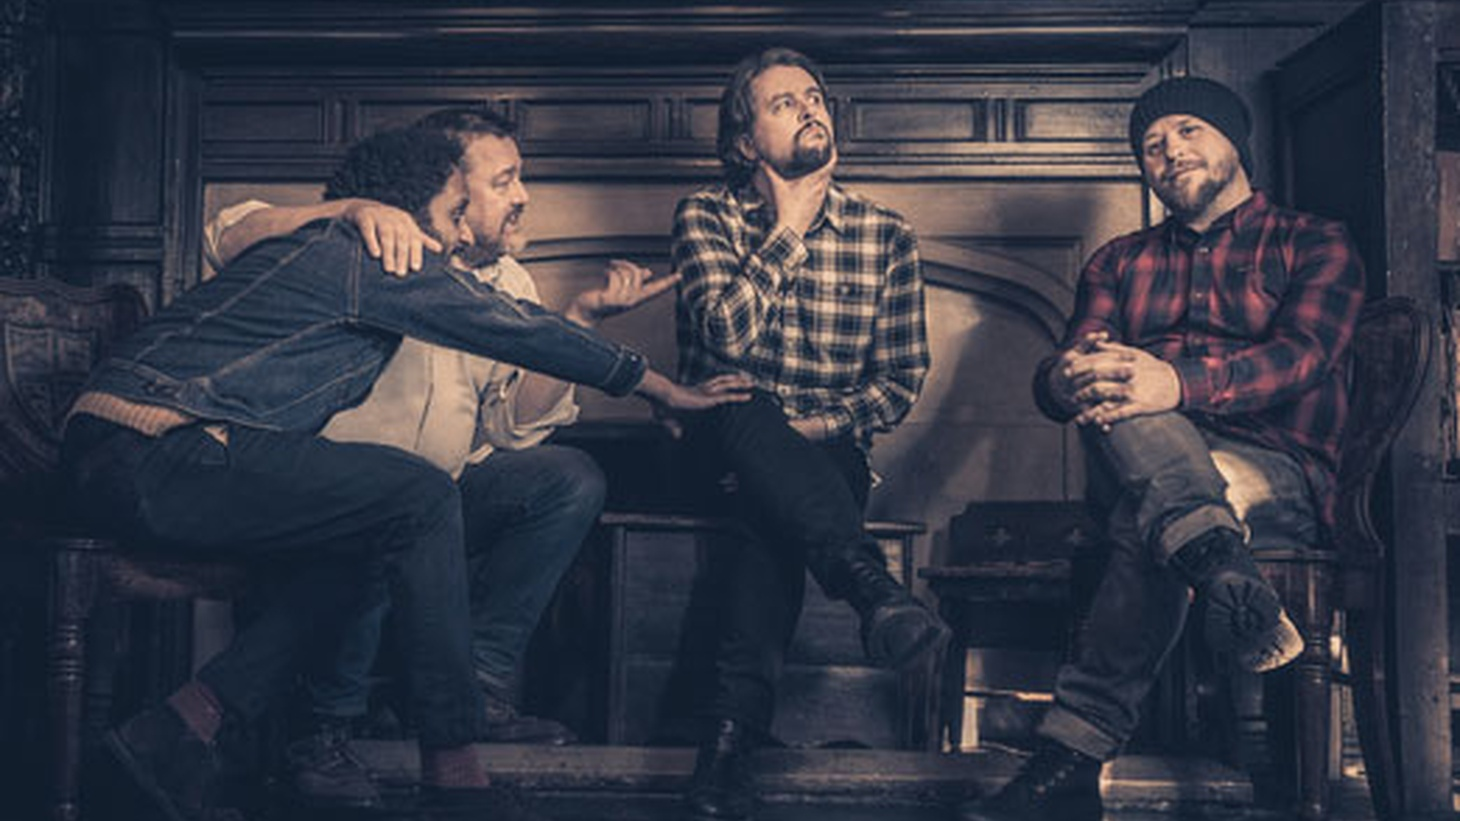 Since their debut album 15 years ago, Elbow has let its songs take their natural course. With music that never feels rushed or bogged down with overblown choruses, the lyrical tales wash over us carried on mellifluous melodies.